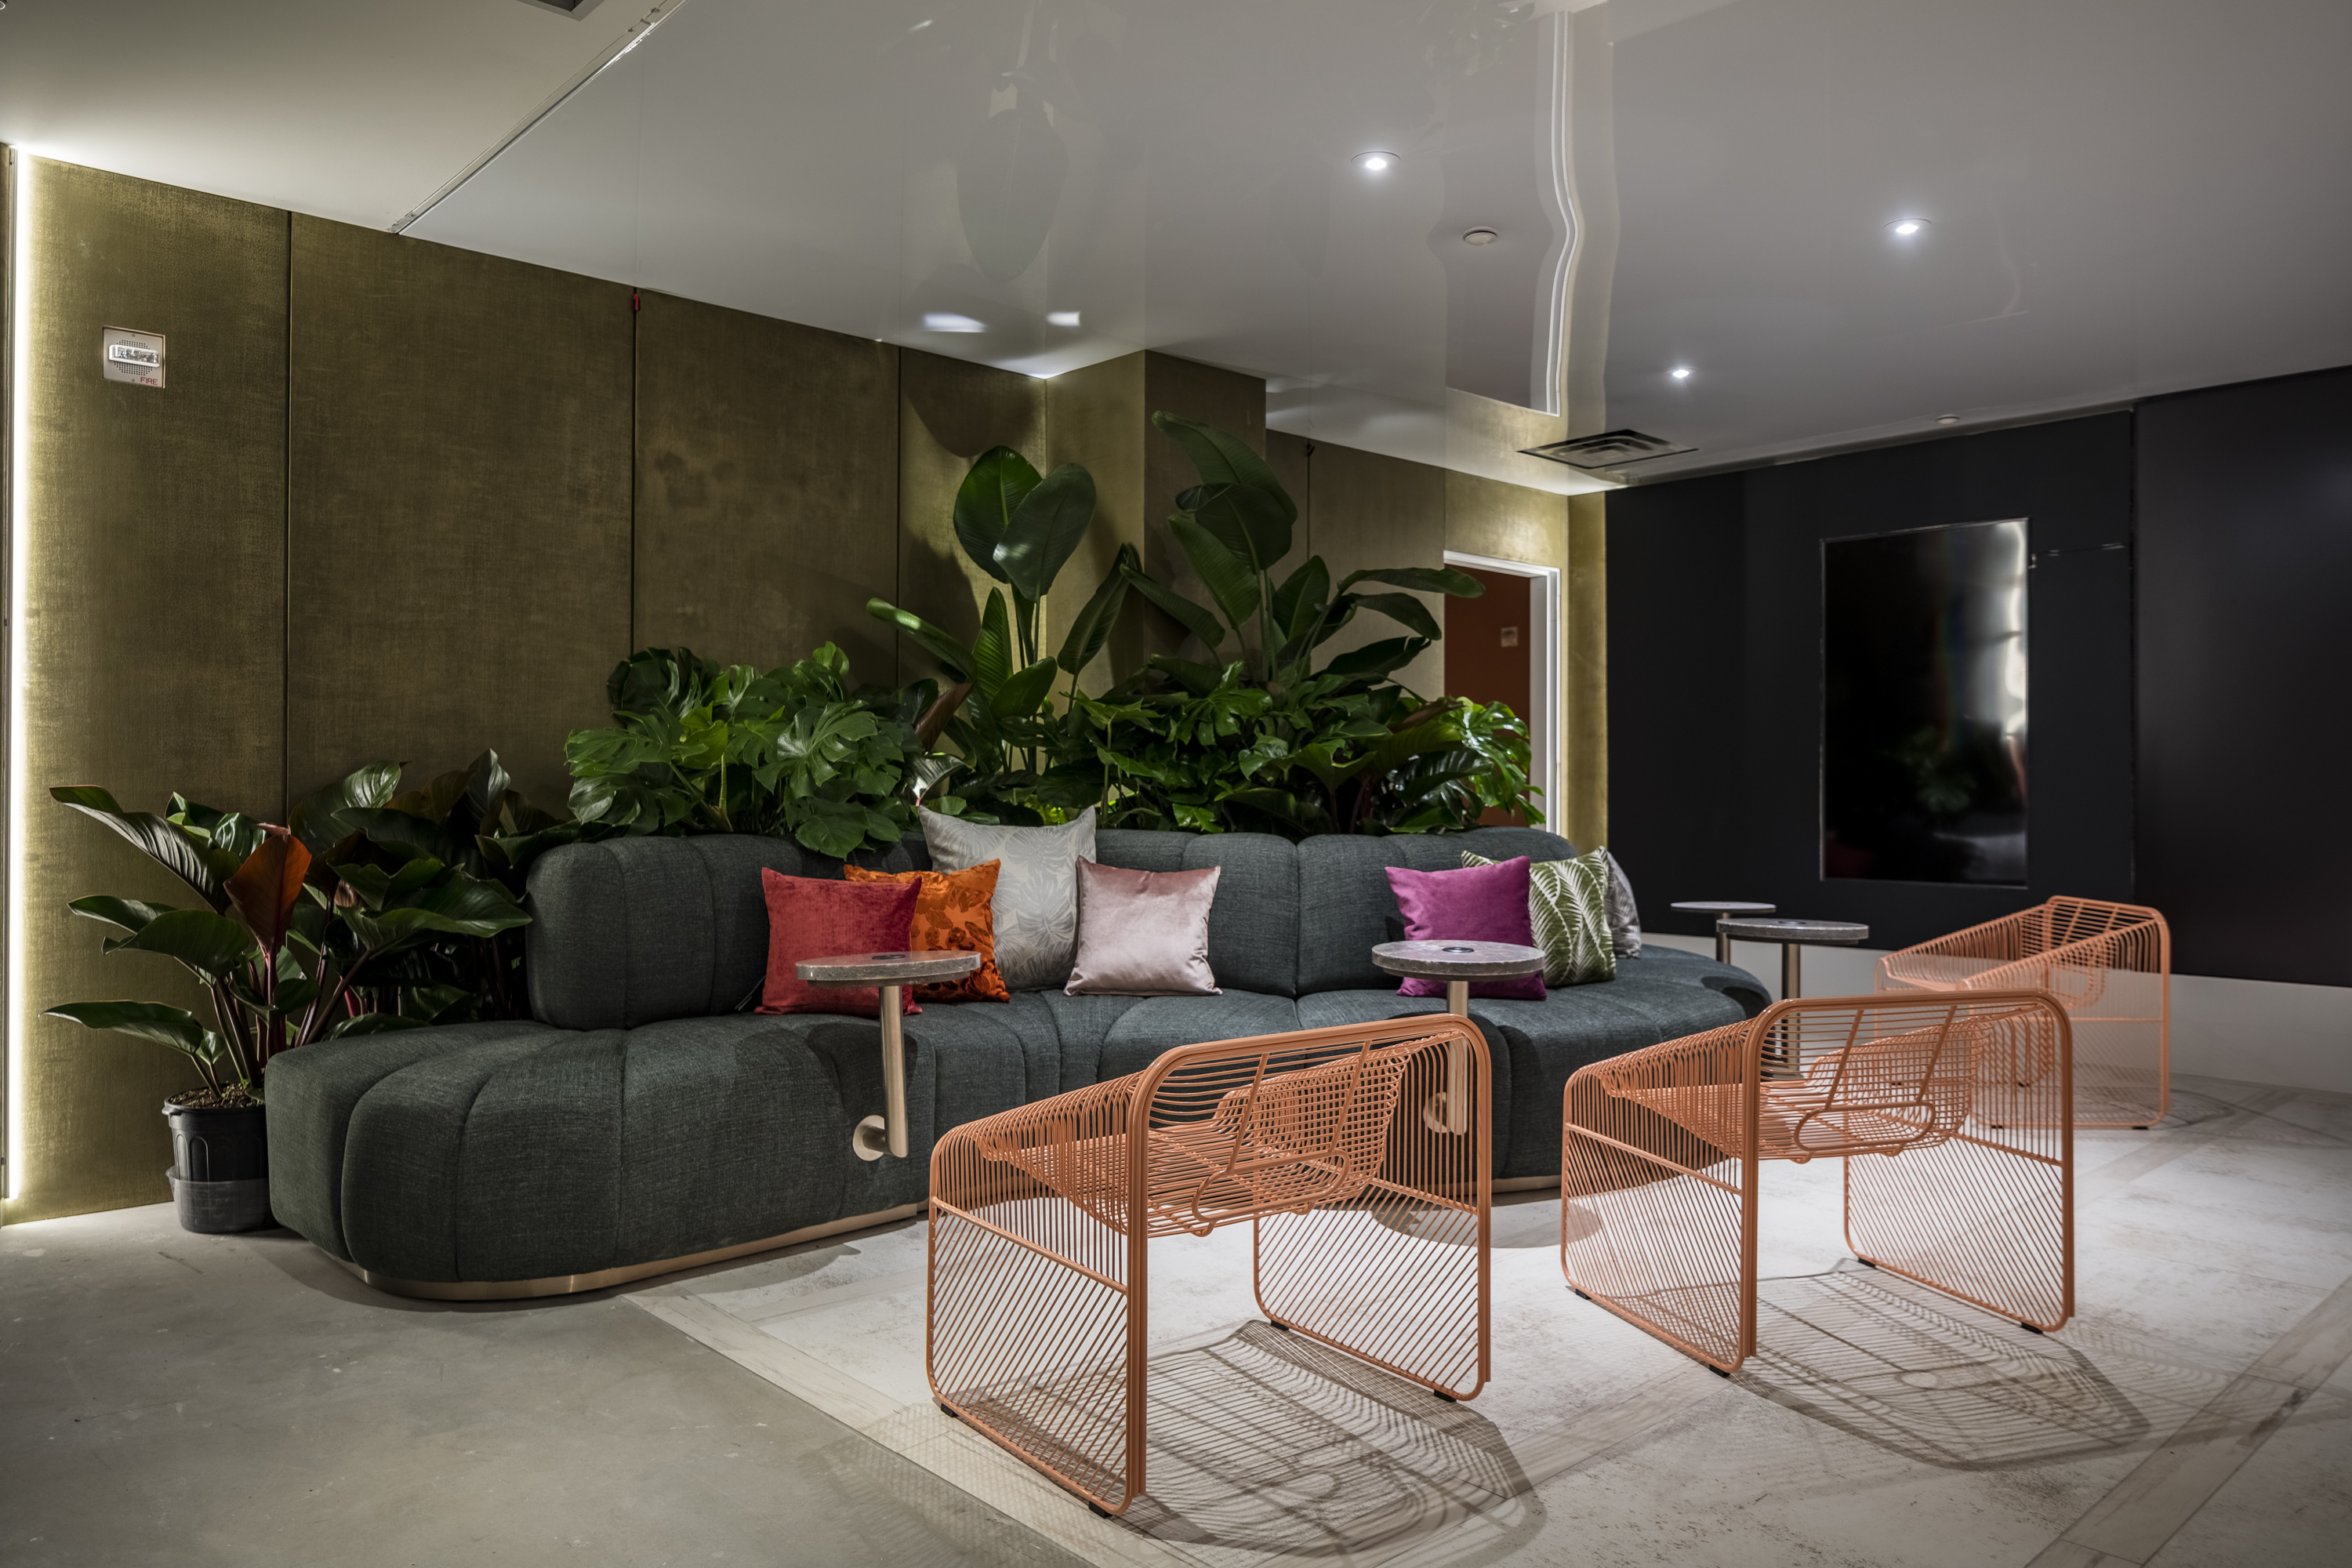 CASACOR Miami Returns to Brickell For The Second Year In a Row